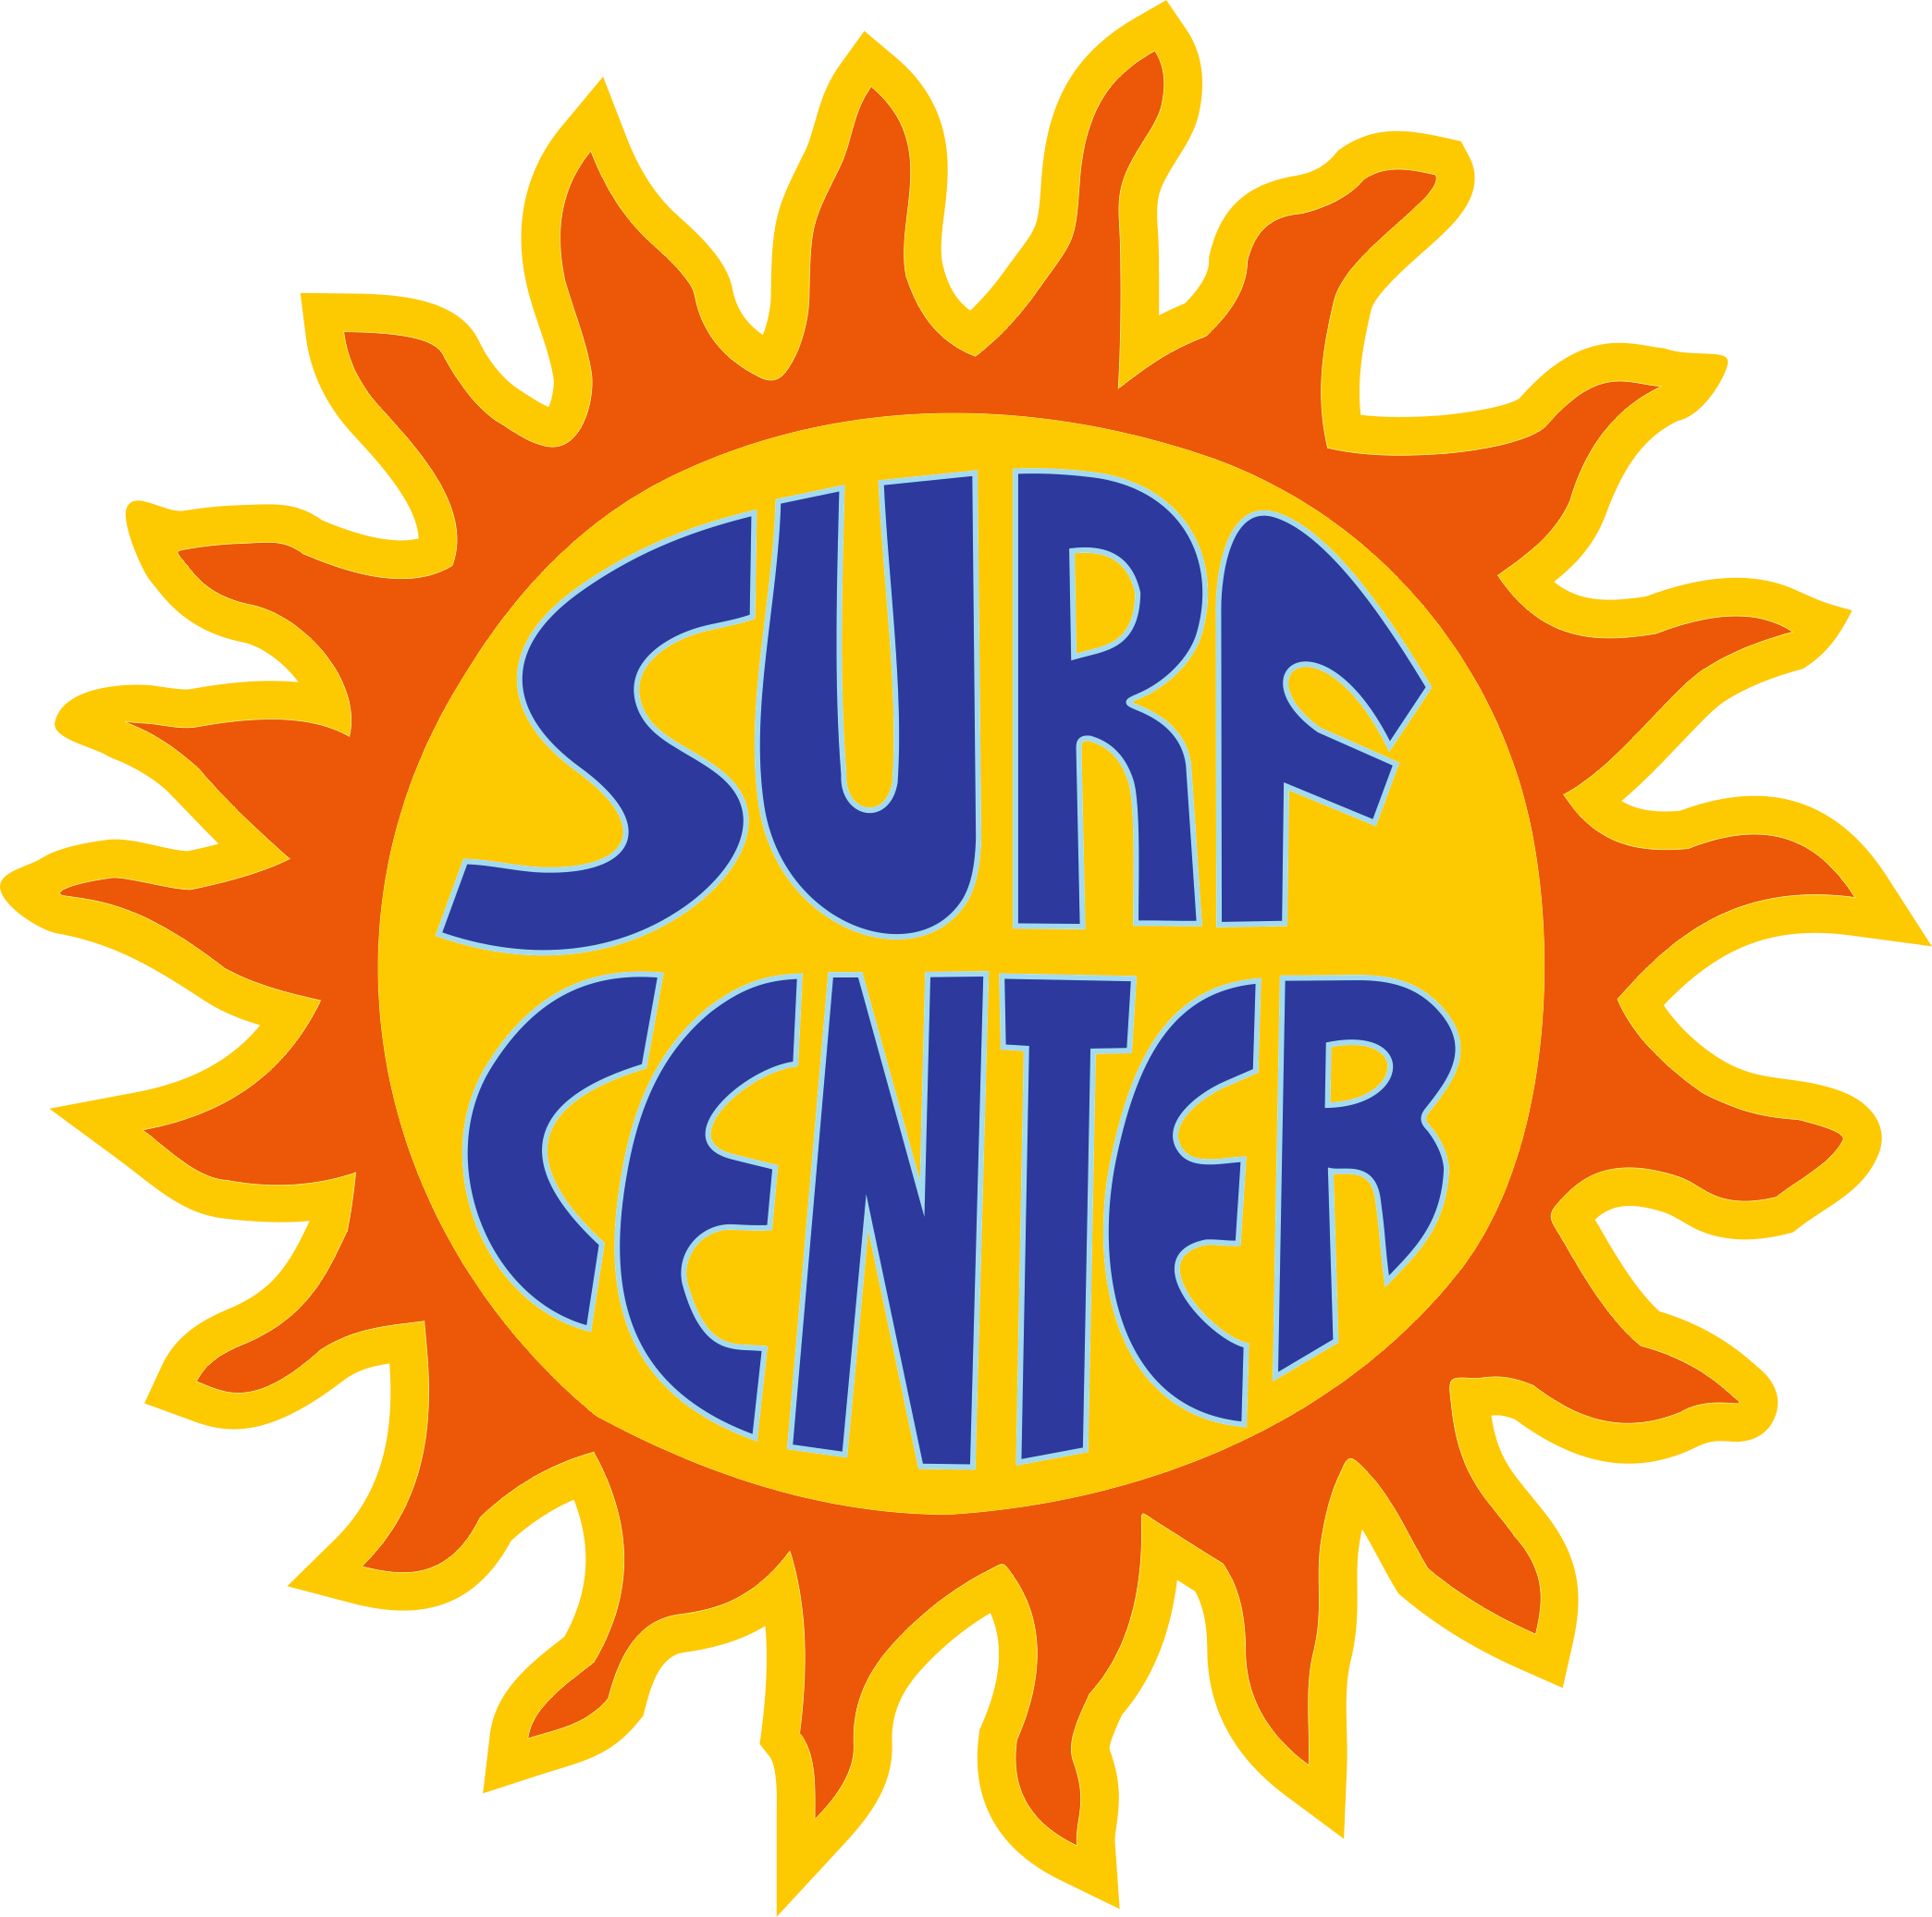 Surf Center Playa Sur